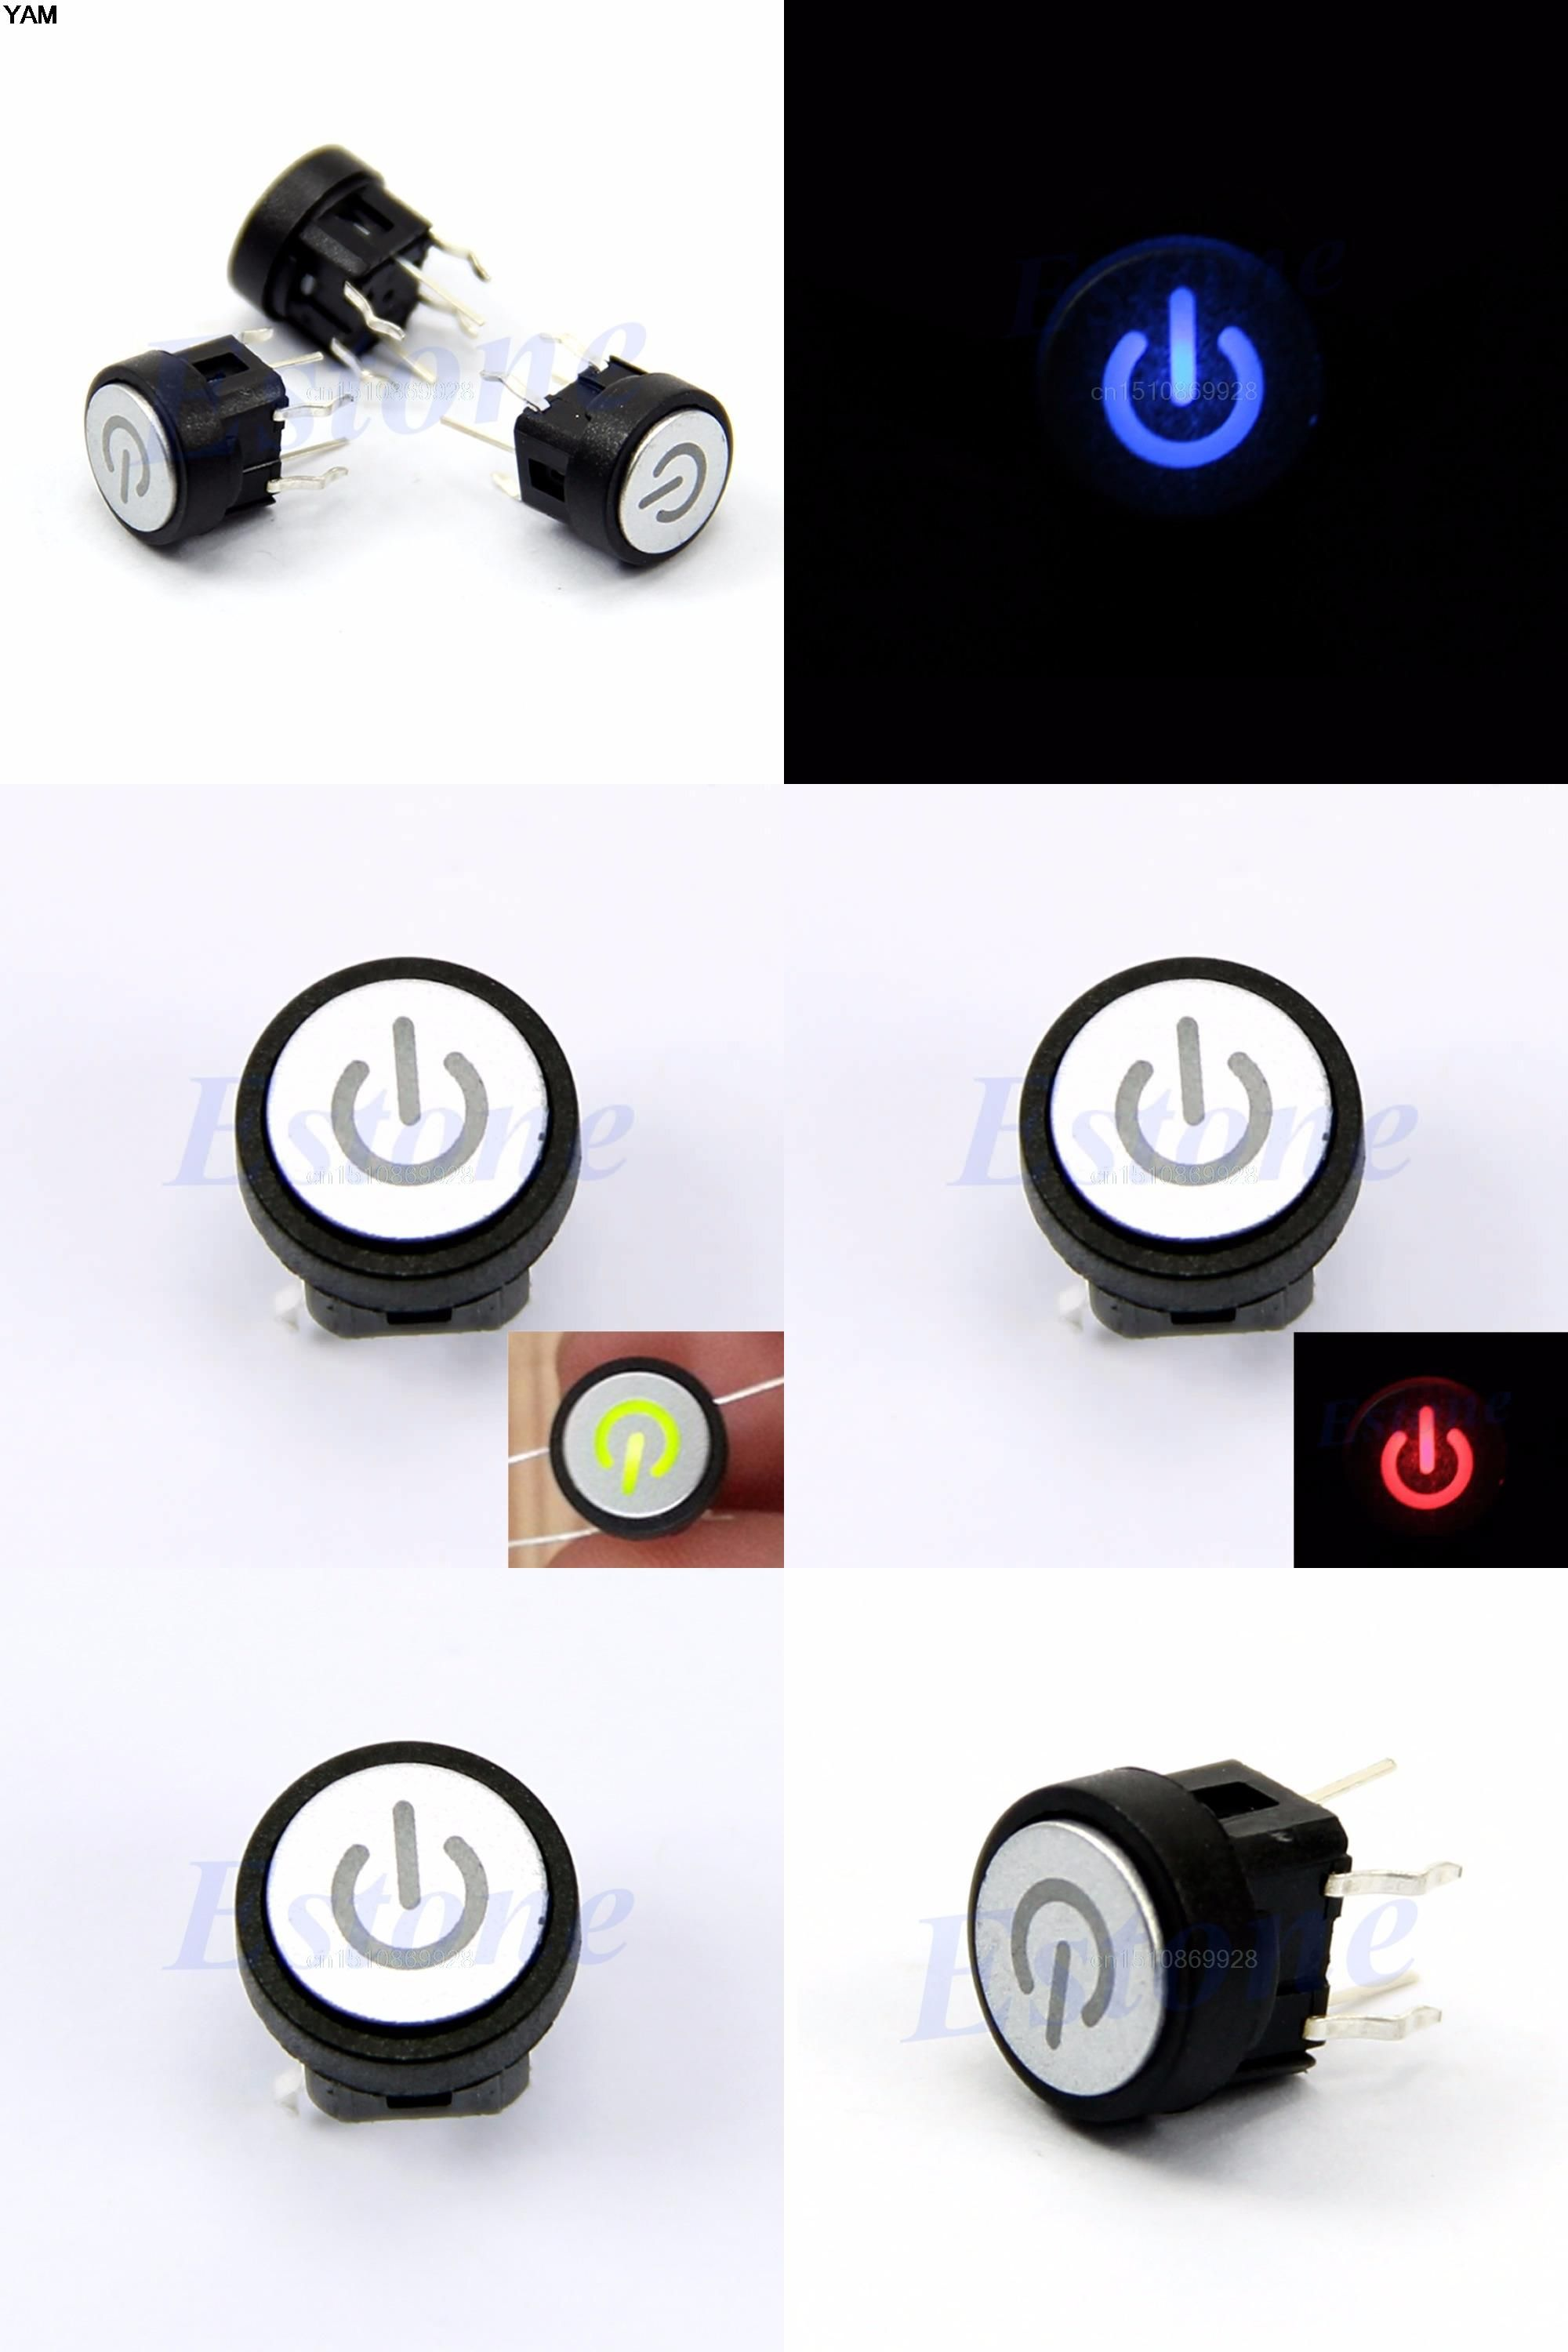 Visit to buy 1pc push button green led light power symbol push visit to buy push button green led light power symbol push button momentary latching computer case touch switch biocorpaavc Choice Image